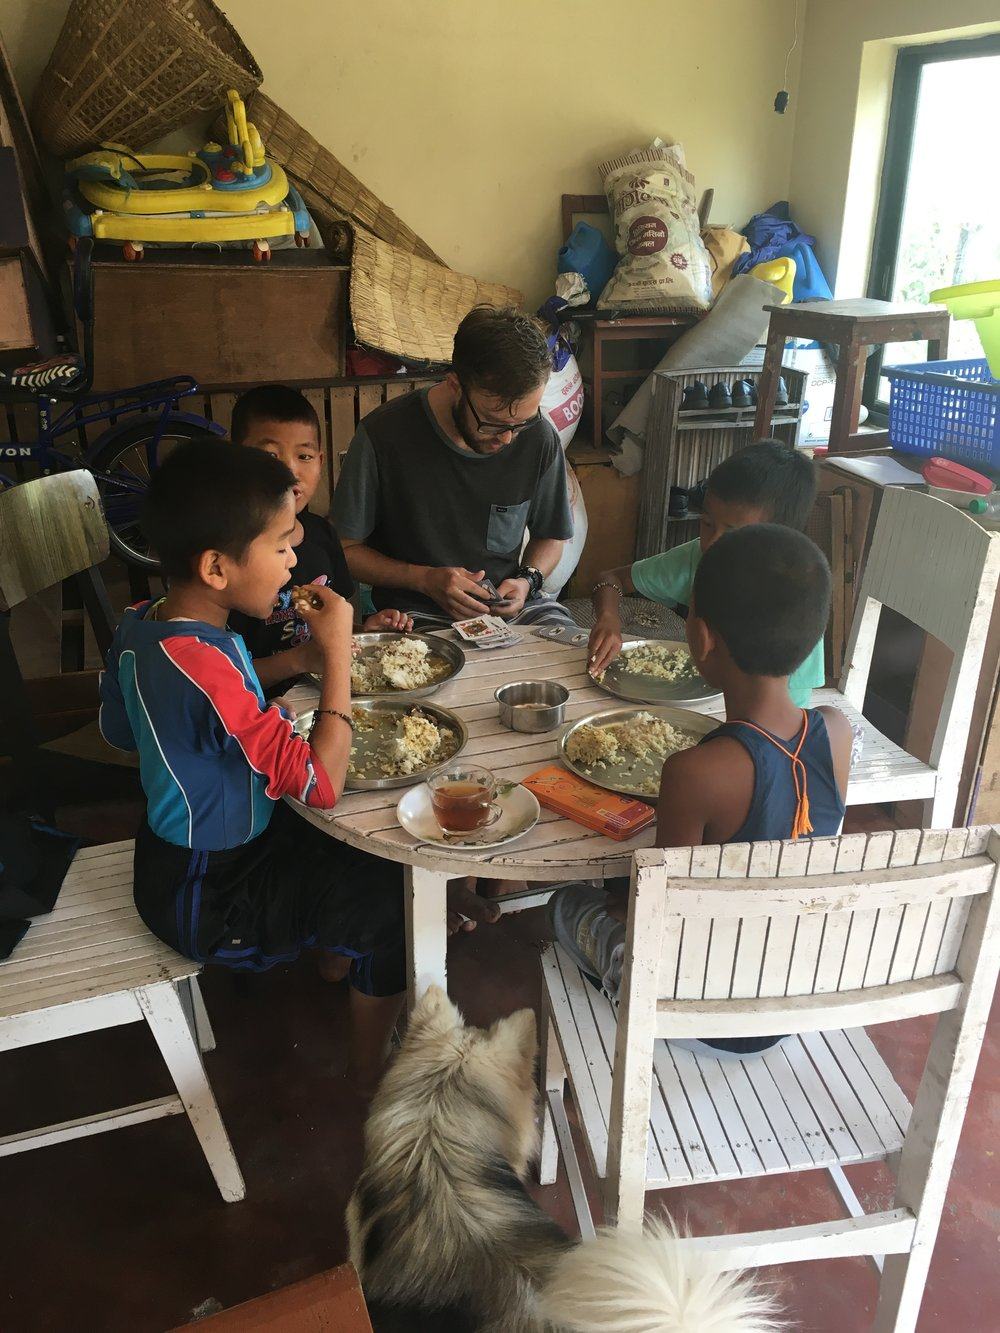 The boys breakfast on dal bhat before school